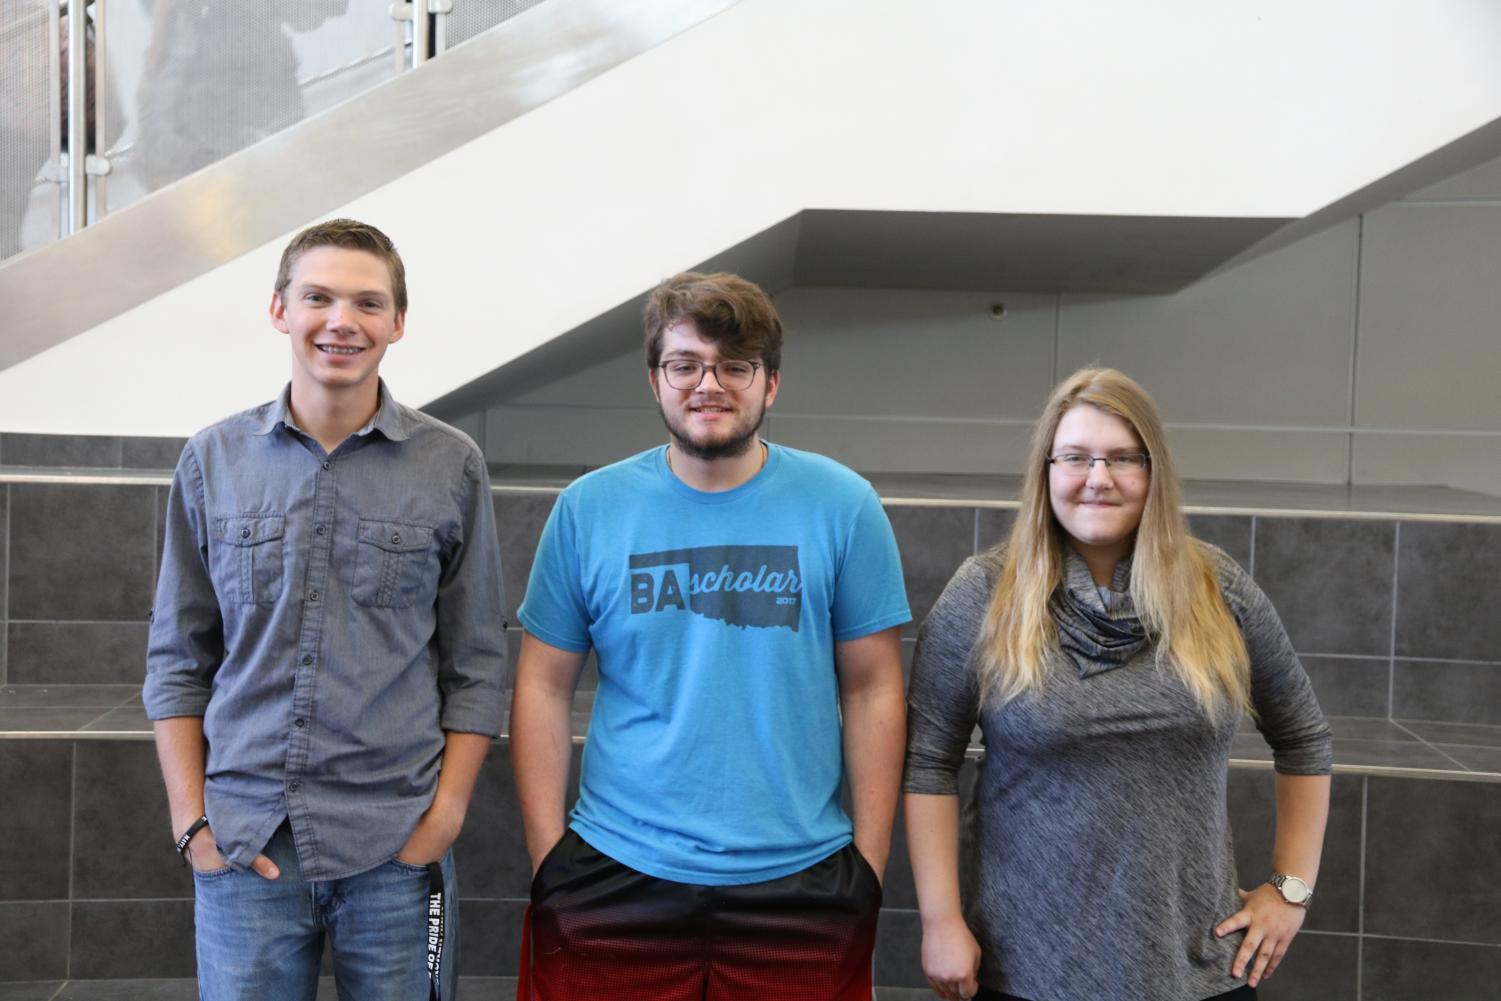 National Merit Semi-Finalists Jeremie Reese, Mason Simmons, and Gillian LeFevre pose for a photo.